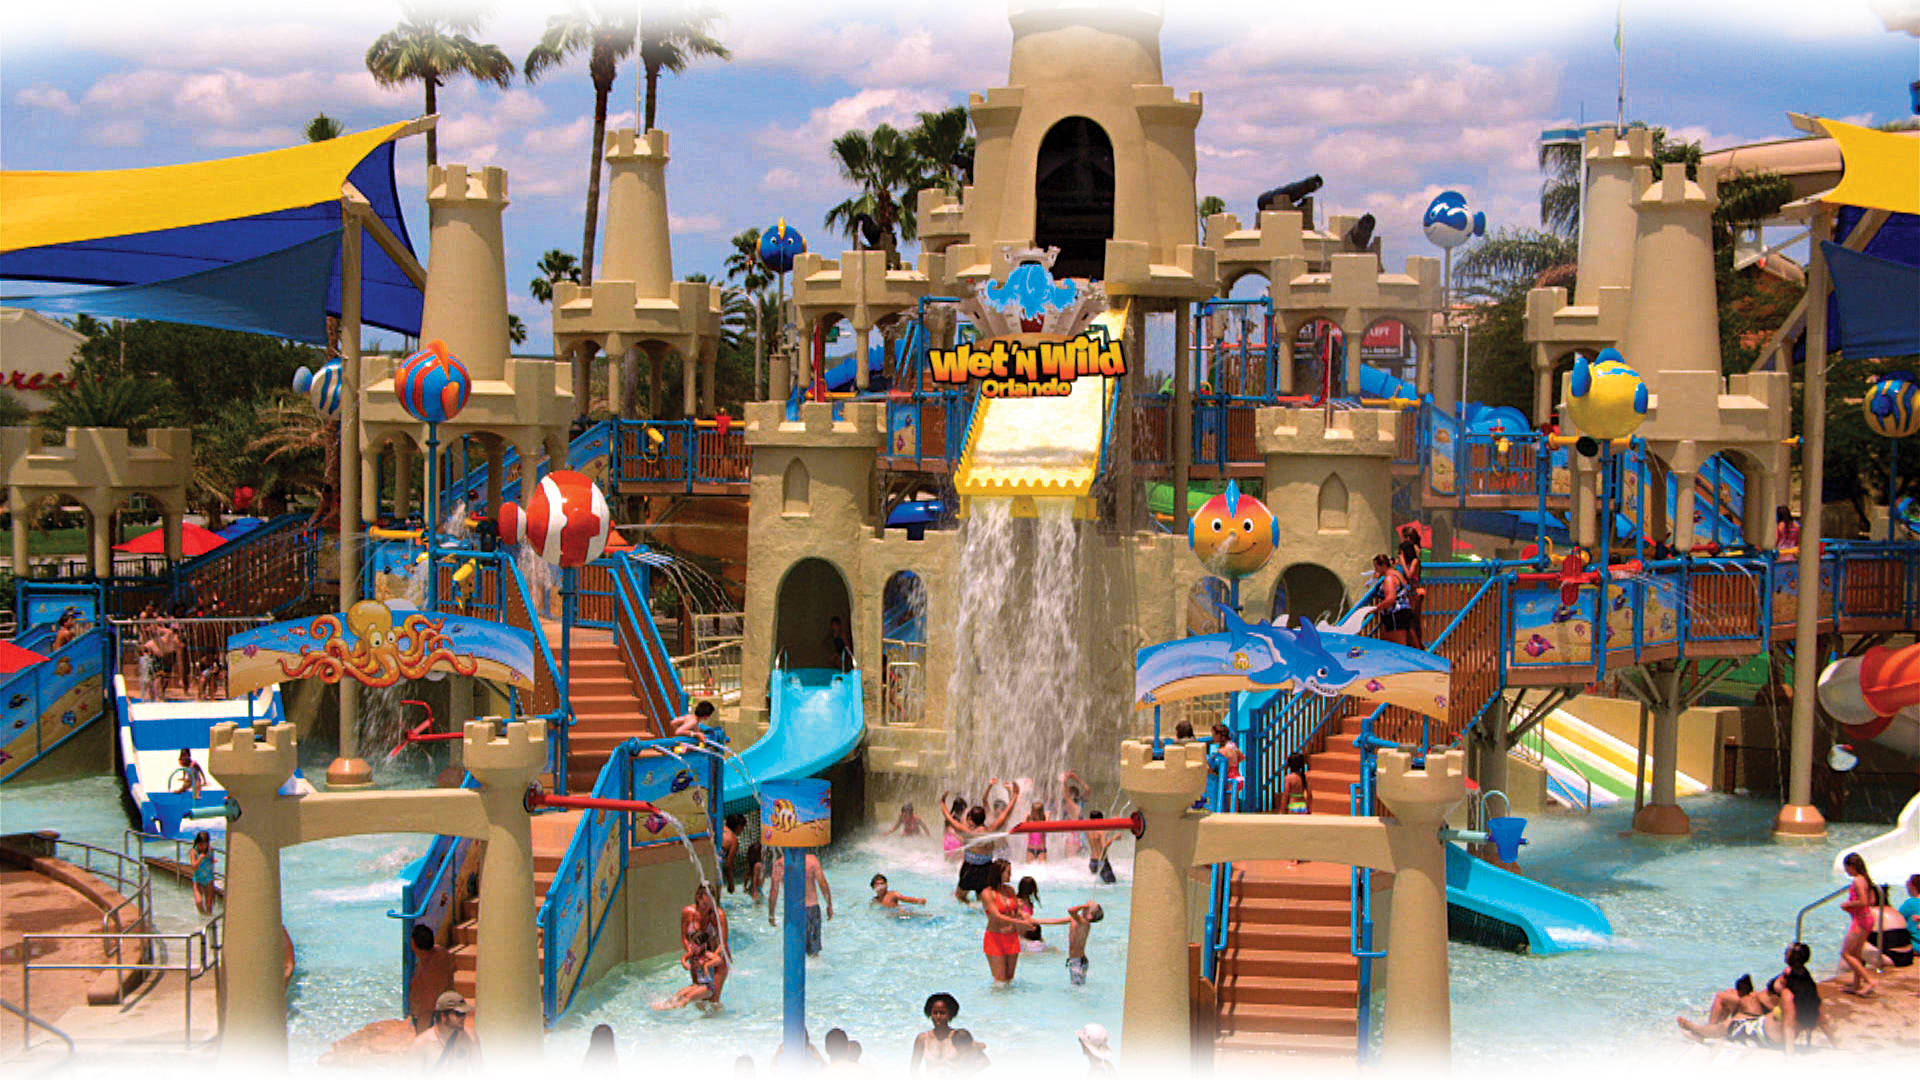 Wetn_Wild_Blast_Away__orlando_beach_waterpark_american_vacation_living